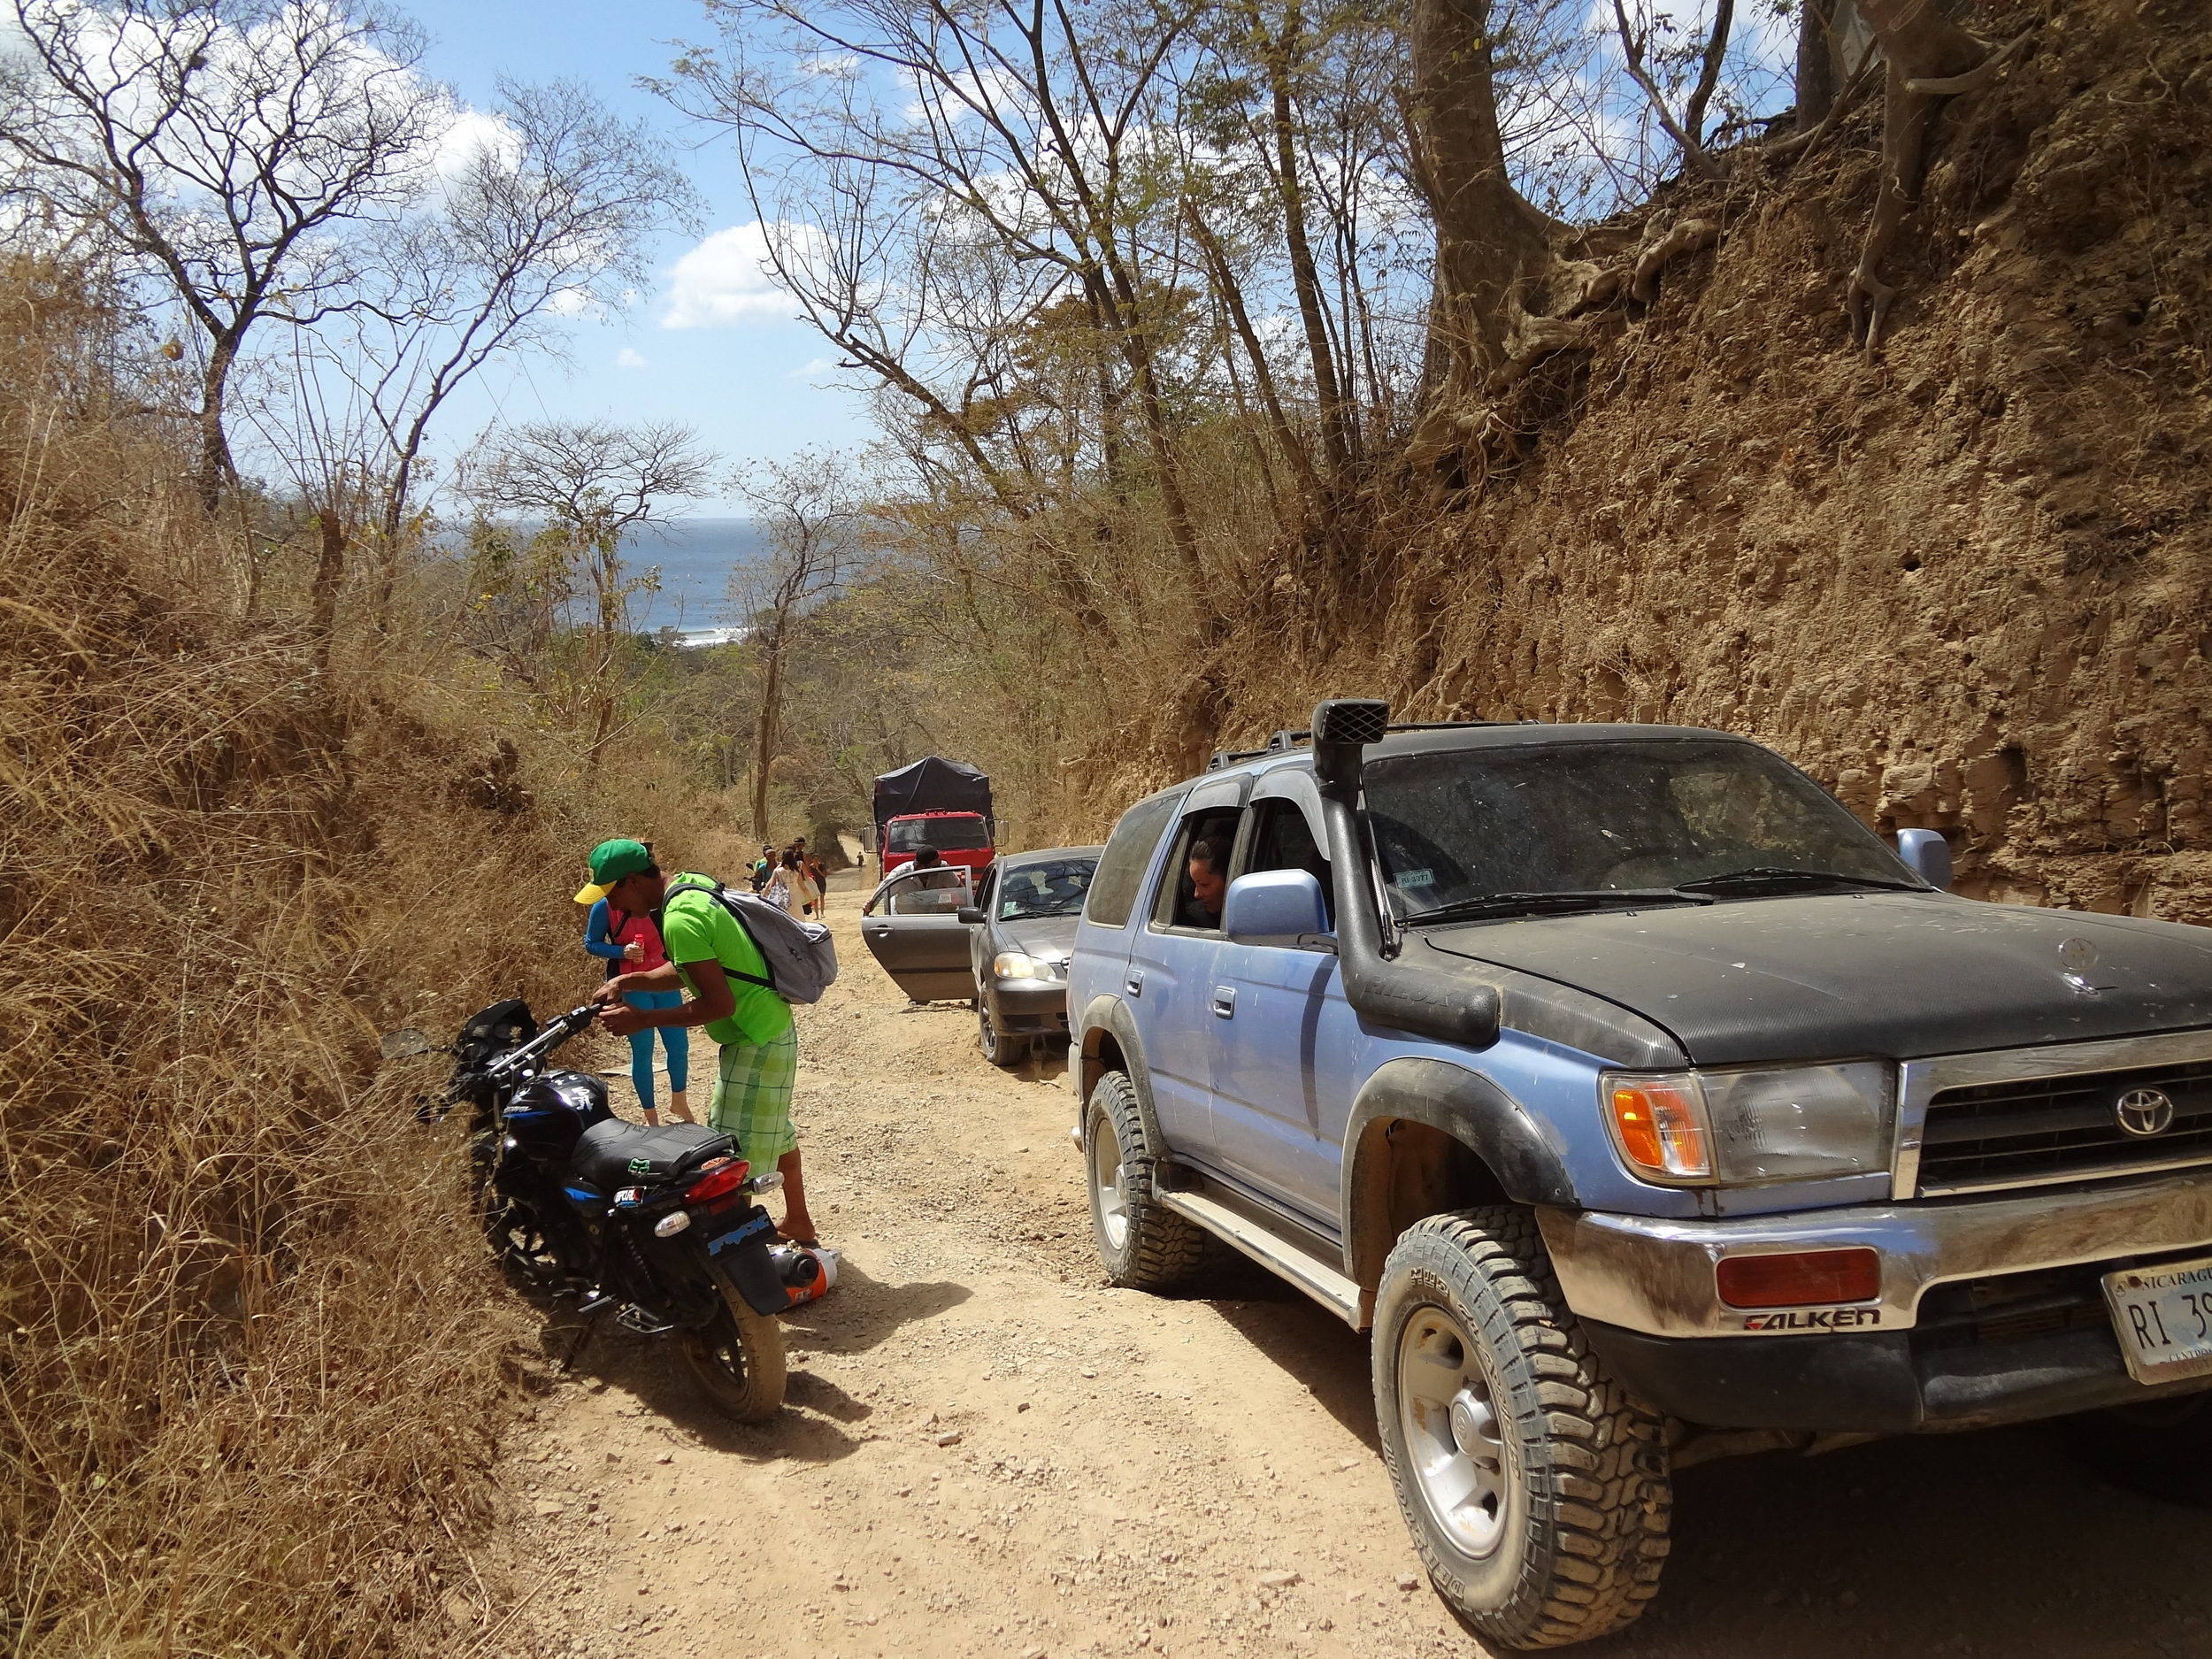 Each time we approached the road to Maderas, we never were 100% sure that we'd make it. Here someone gets towed out.